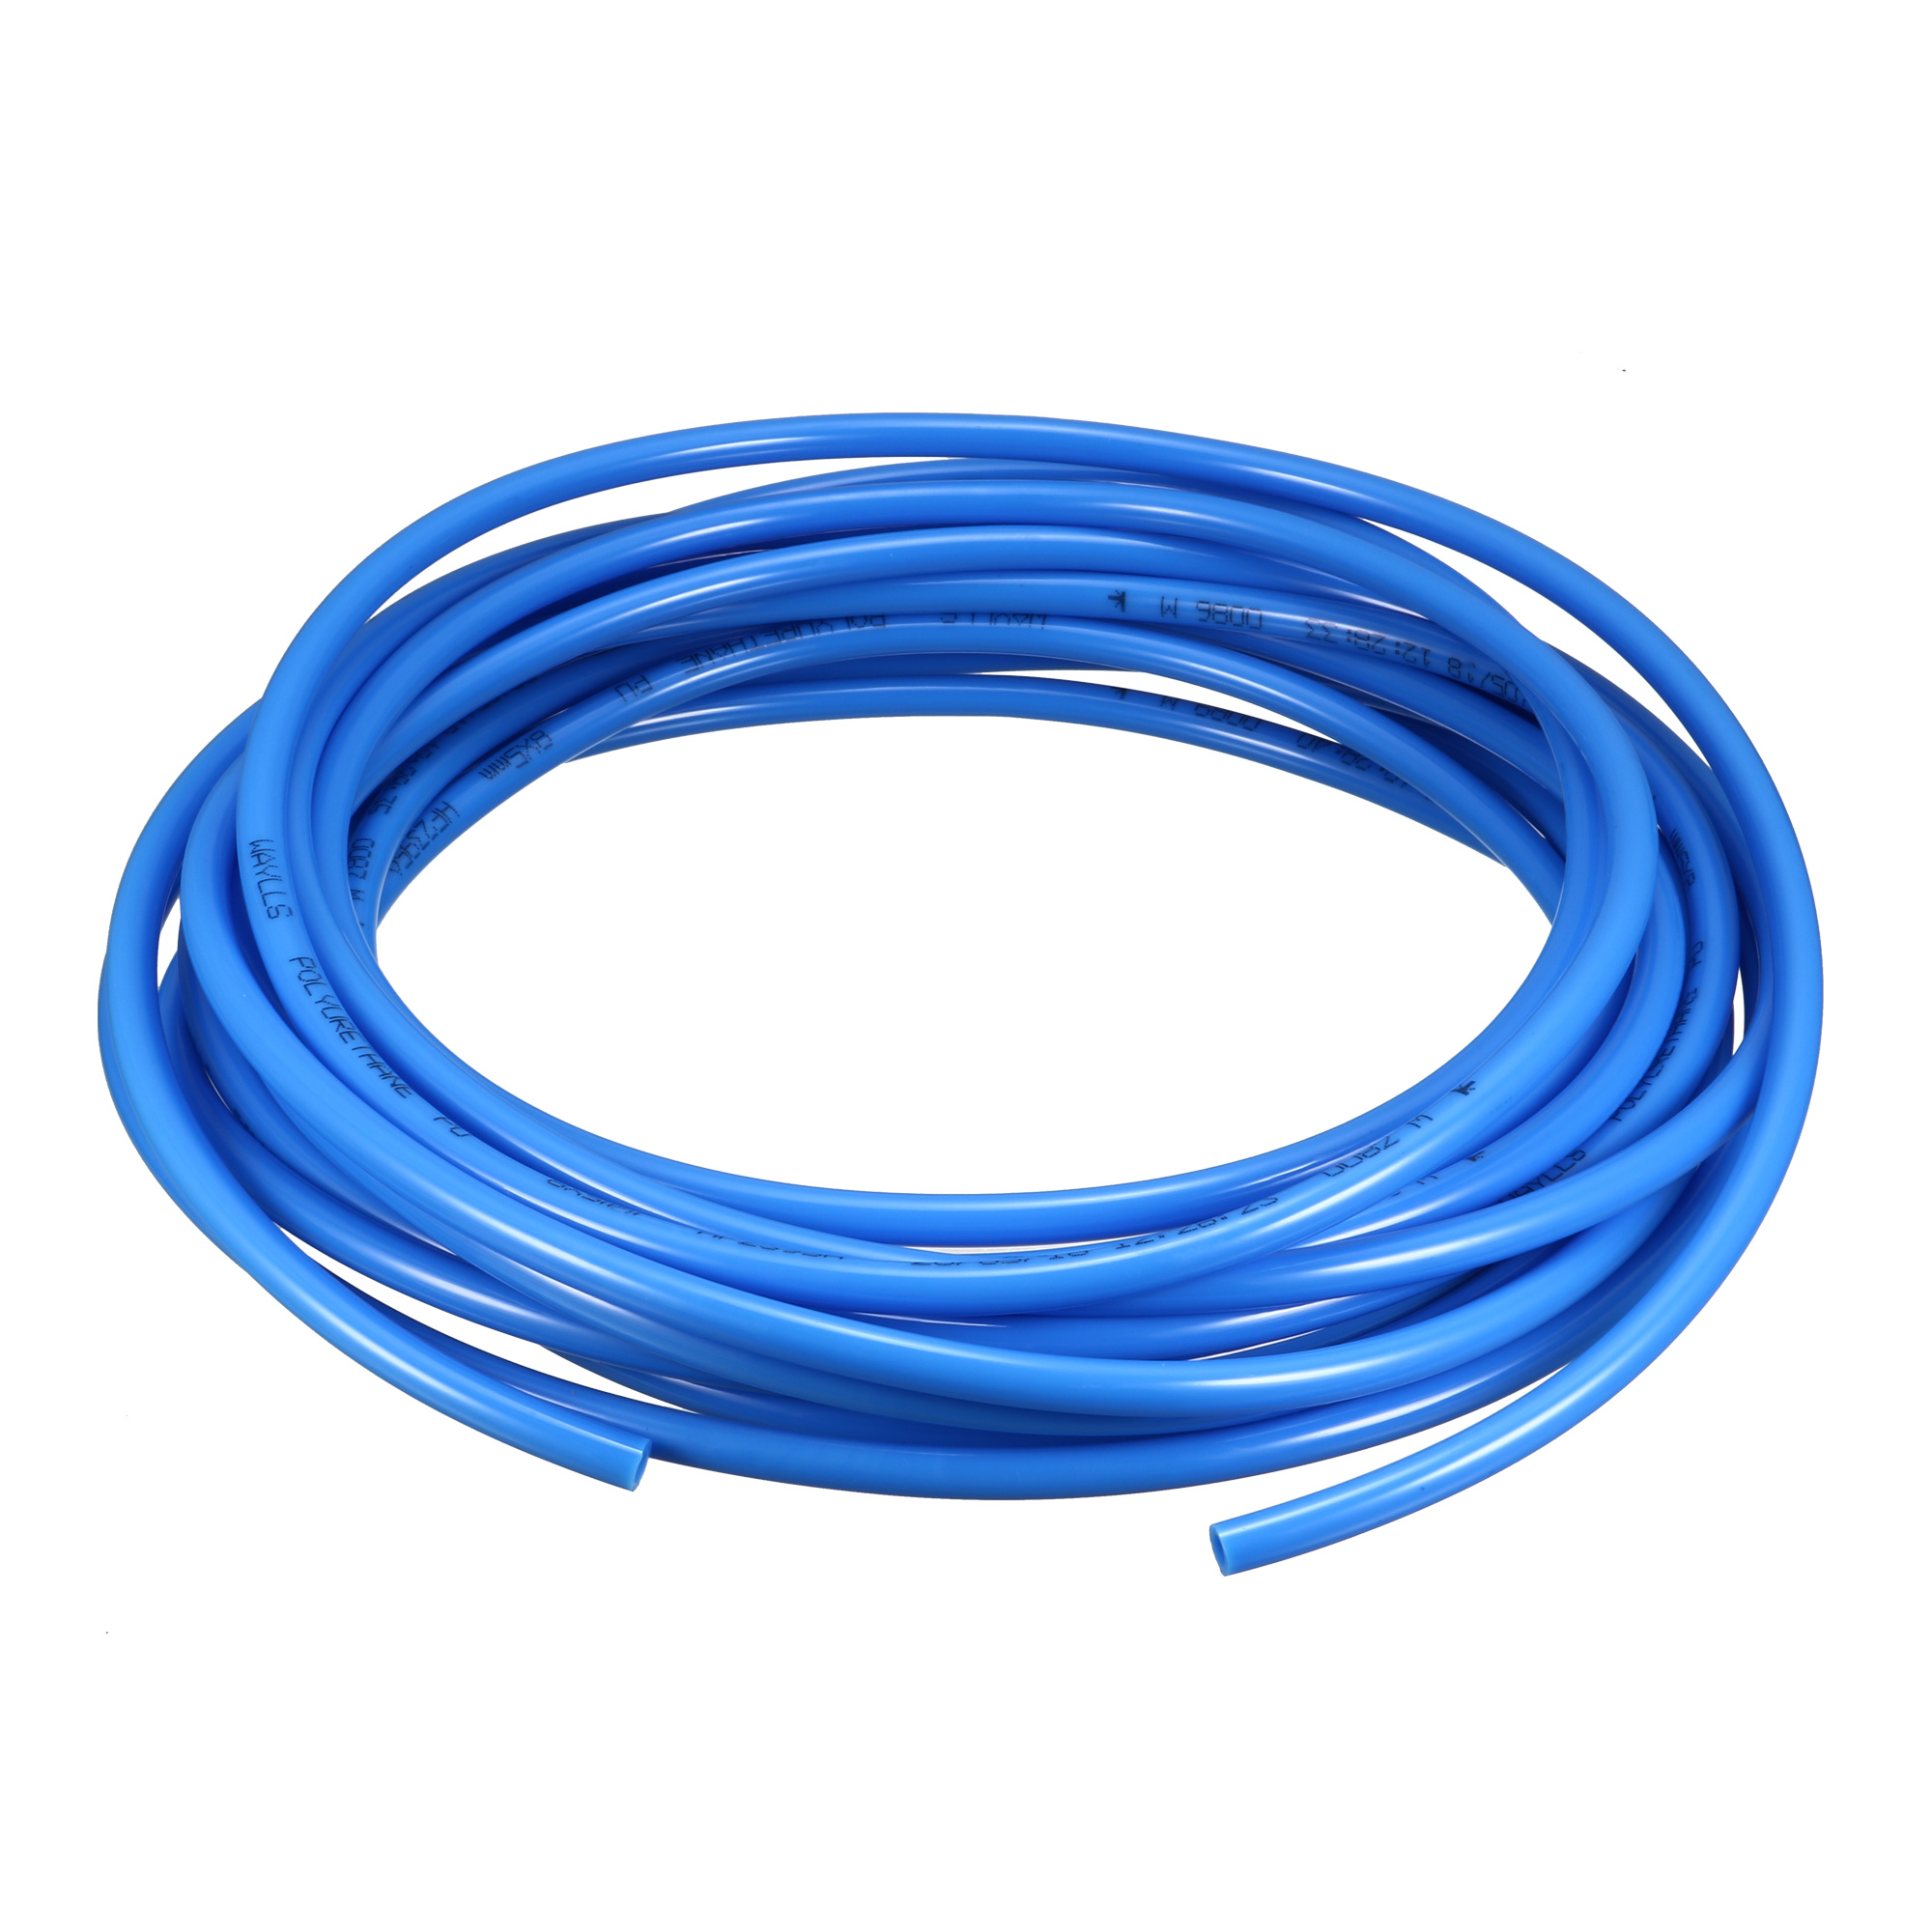 8mm x 5mm Pneumatic Air Compressor Tubing PU Hose Tube Pipe 9.5m Blue